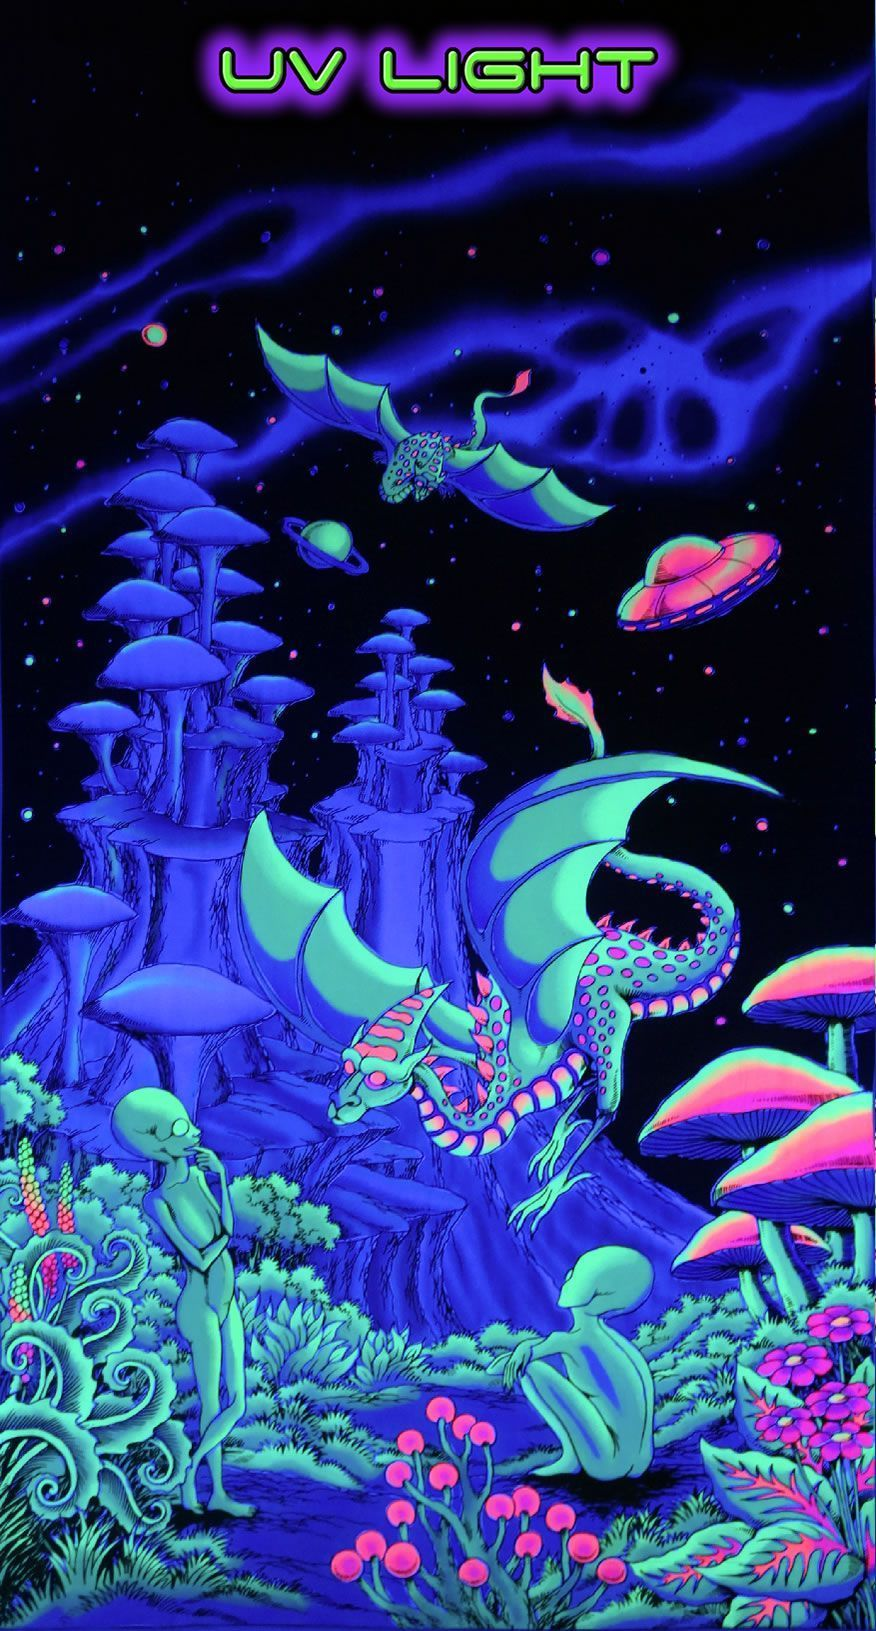 Uv Wallhanging Aliens And Dragons Psychadelic Art Trippy